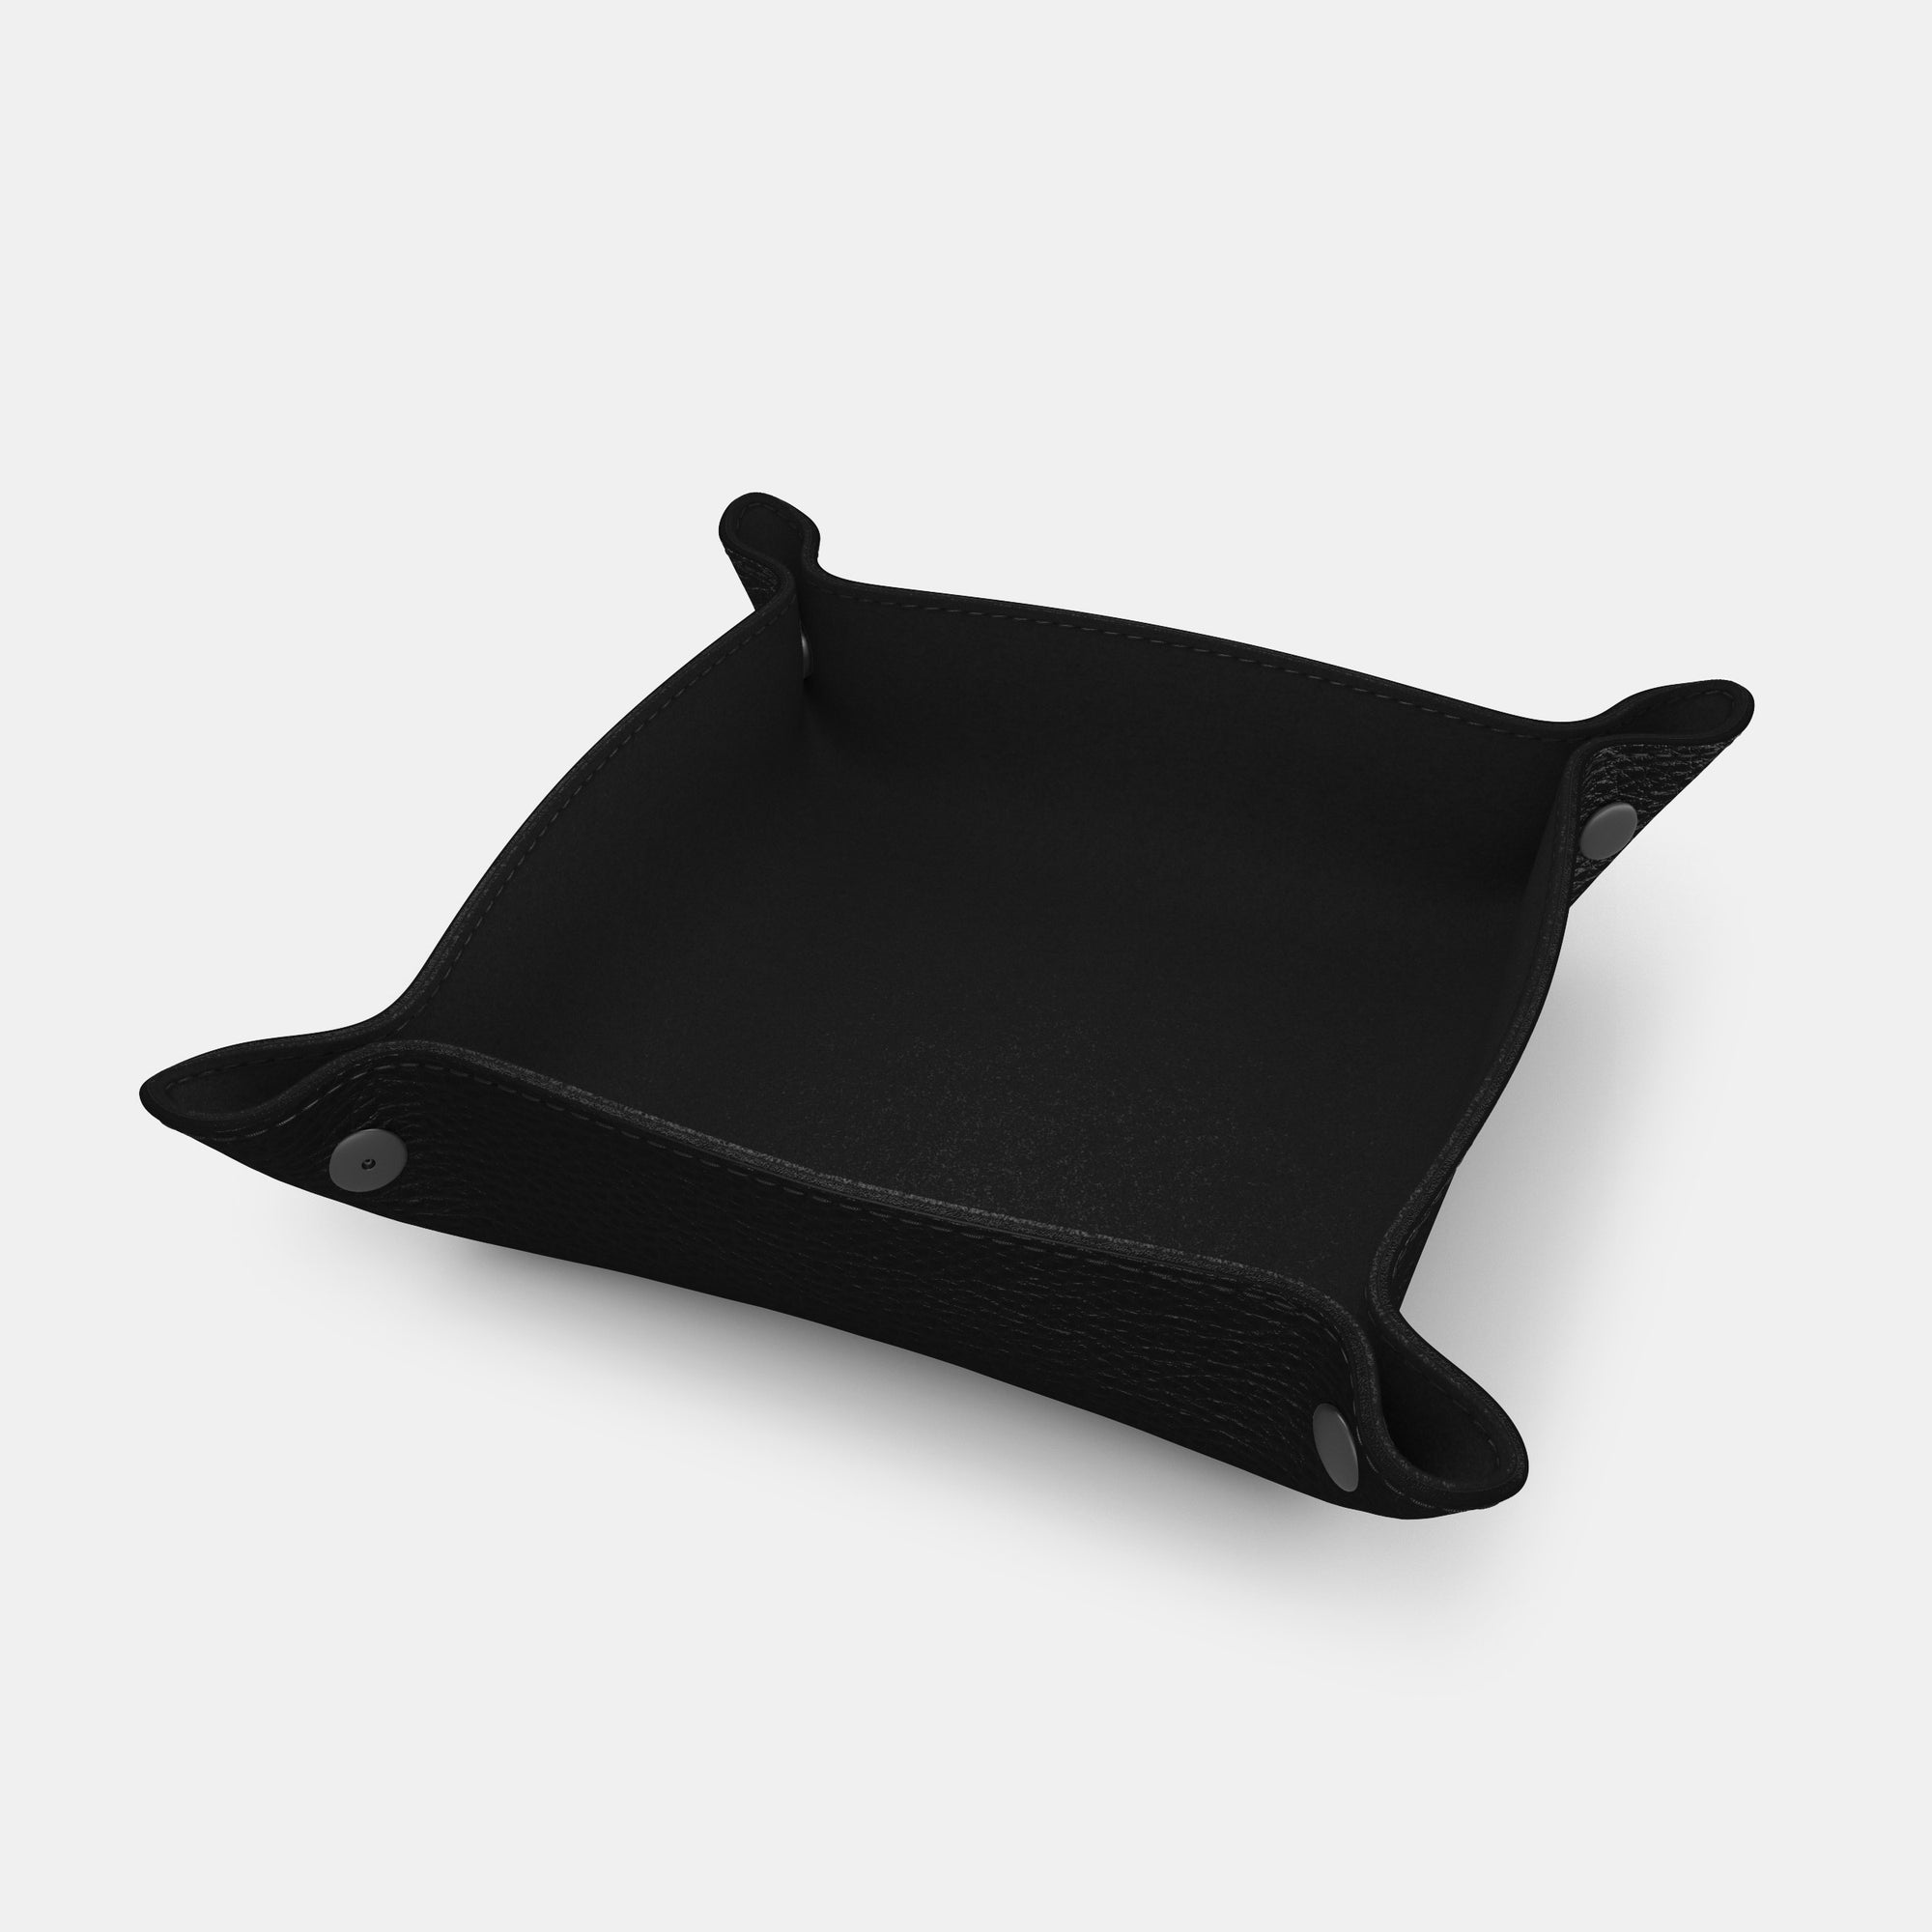 Catch-all Tray - Black and Black - RYAN London